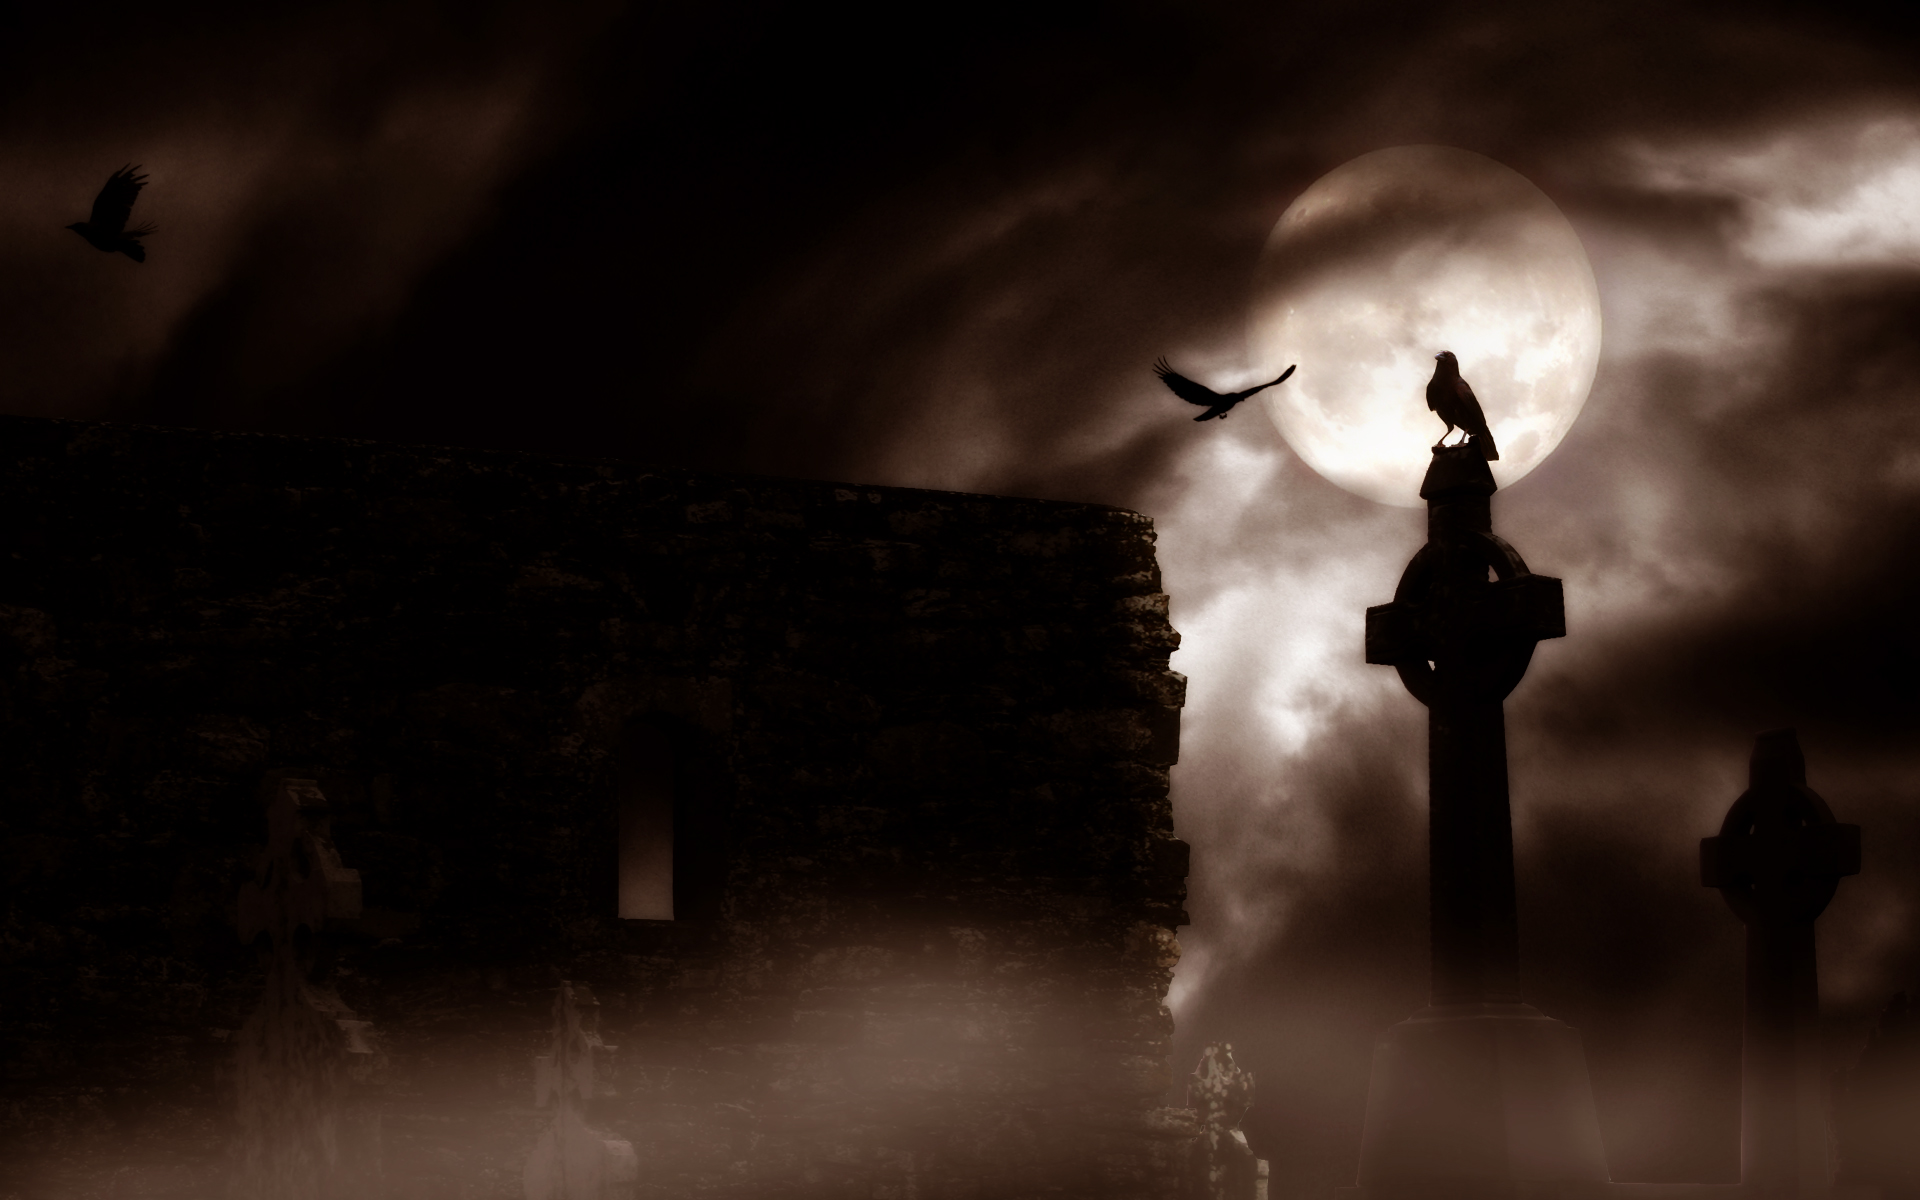 Dark Gothic Backgrounds wallpaper   892992 1920x1200